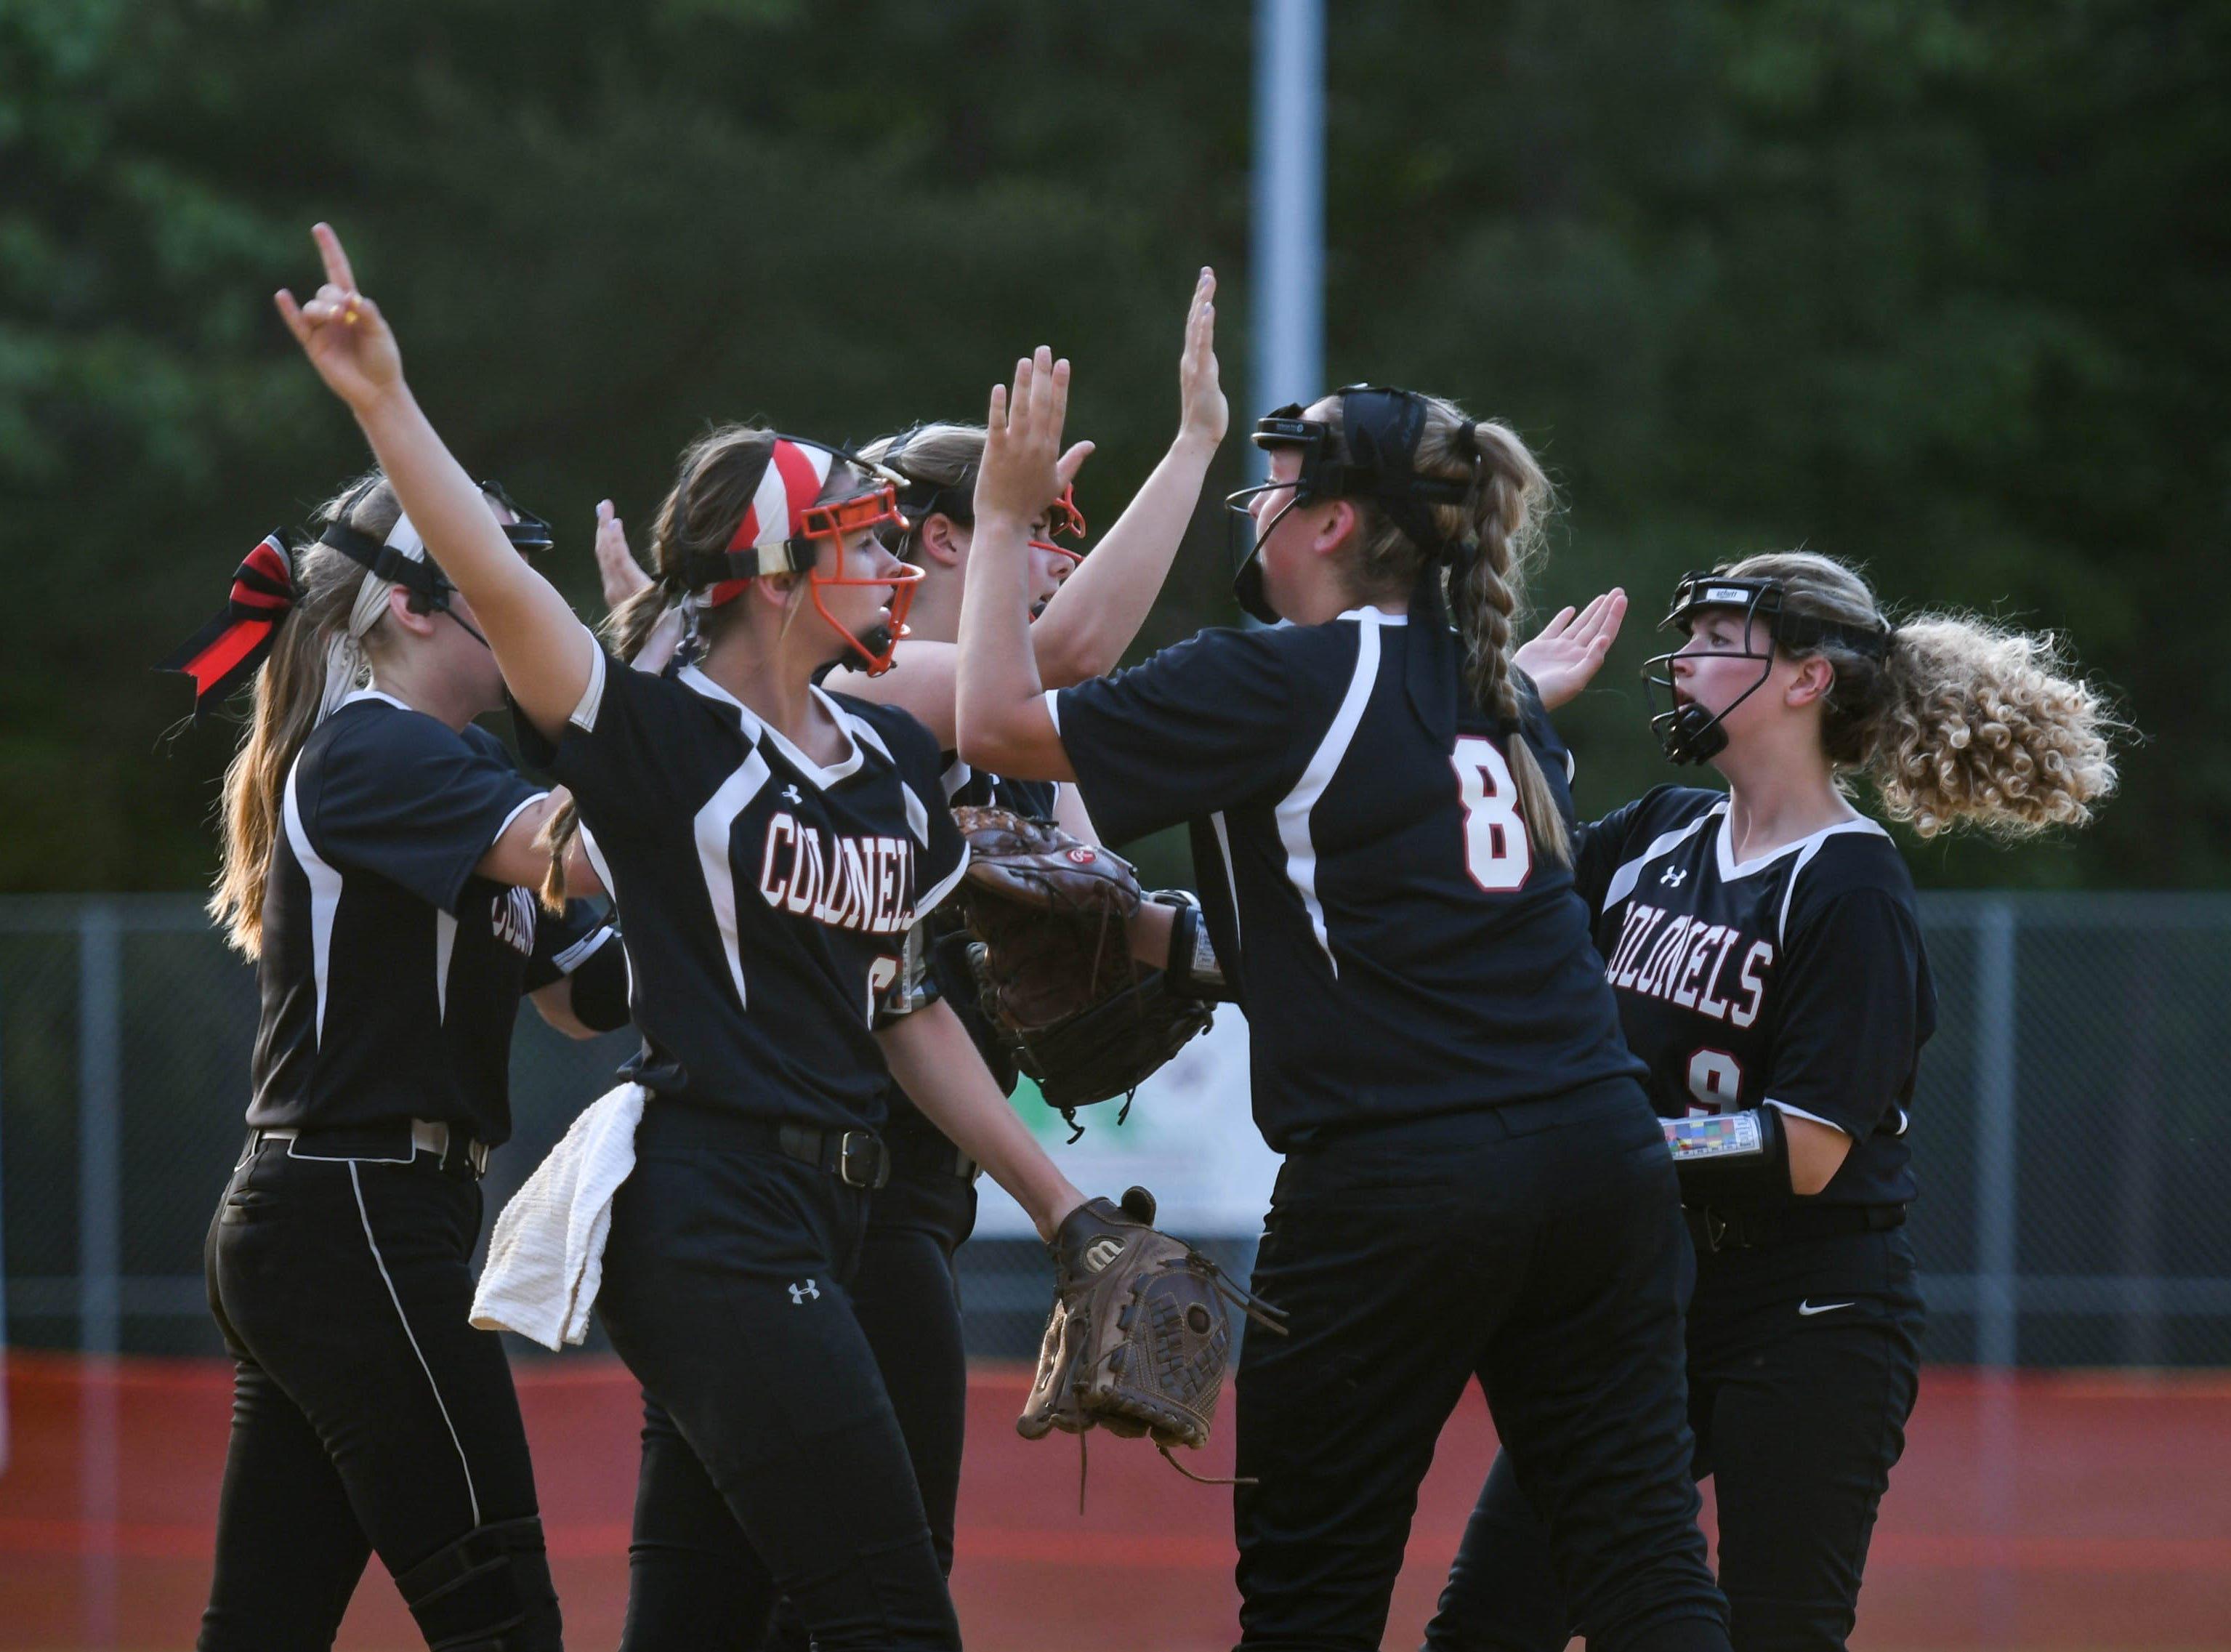 Colonel Richardson cheers after a strike against Decatur in the Bayside Softball Championship game on Wednesday, May 8, 2019. Decatur prevailed with a score of 4 to 1.